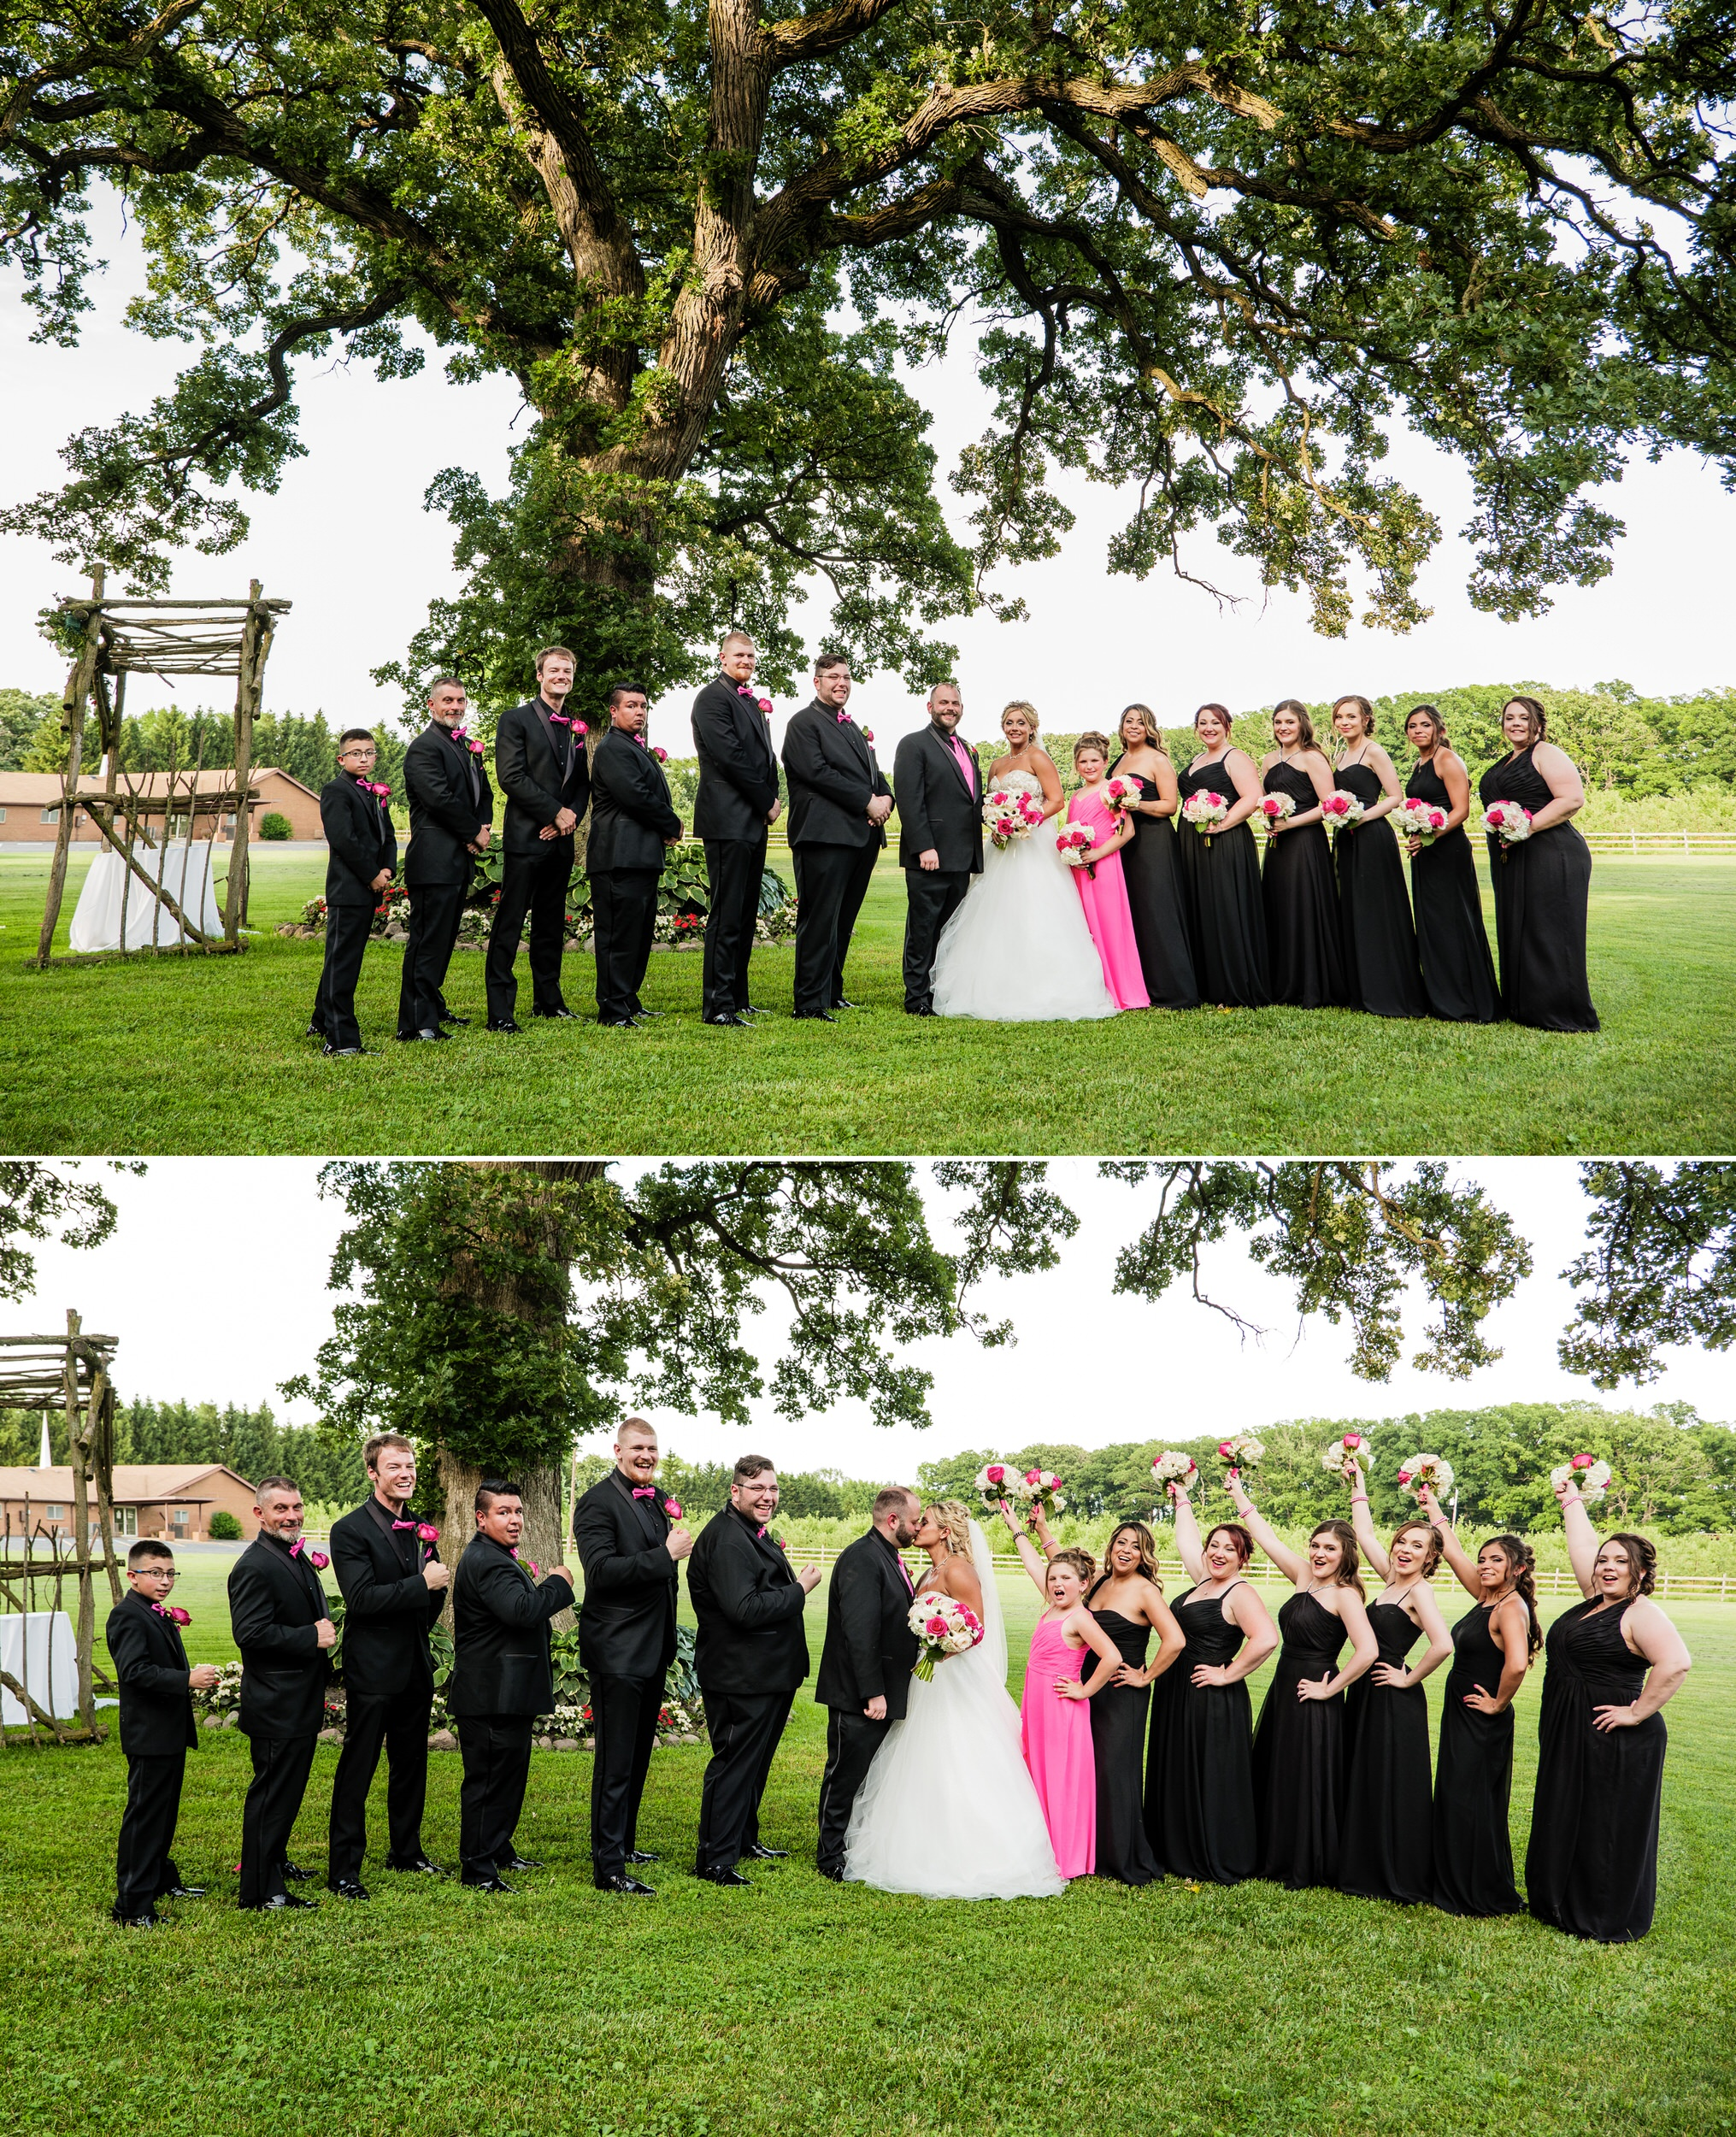 Wedding party group photos underneath the big oak tree.